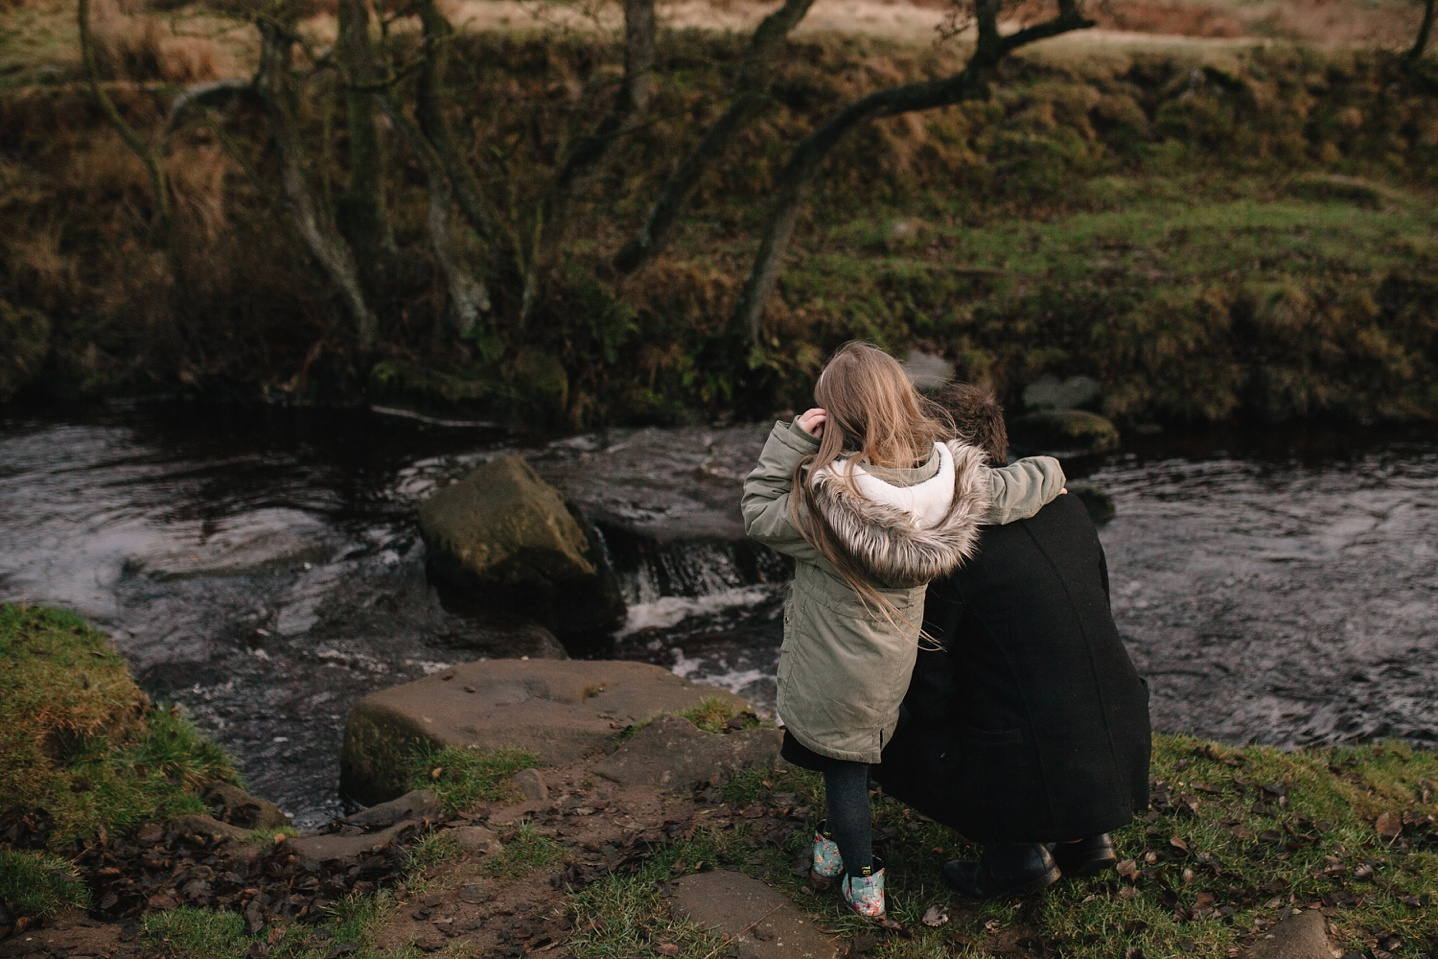 dad crouched down with little girl looking at the river